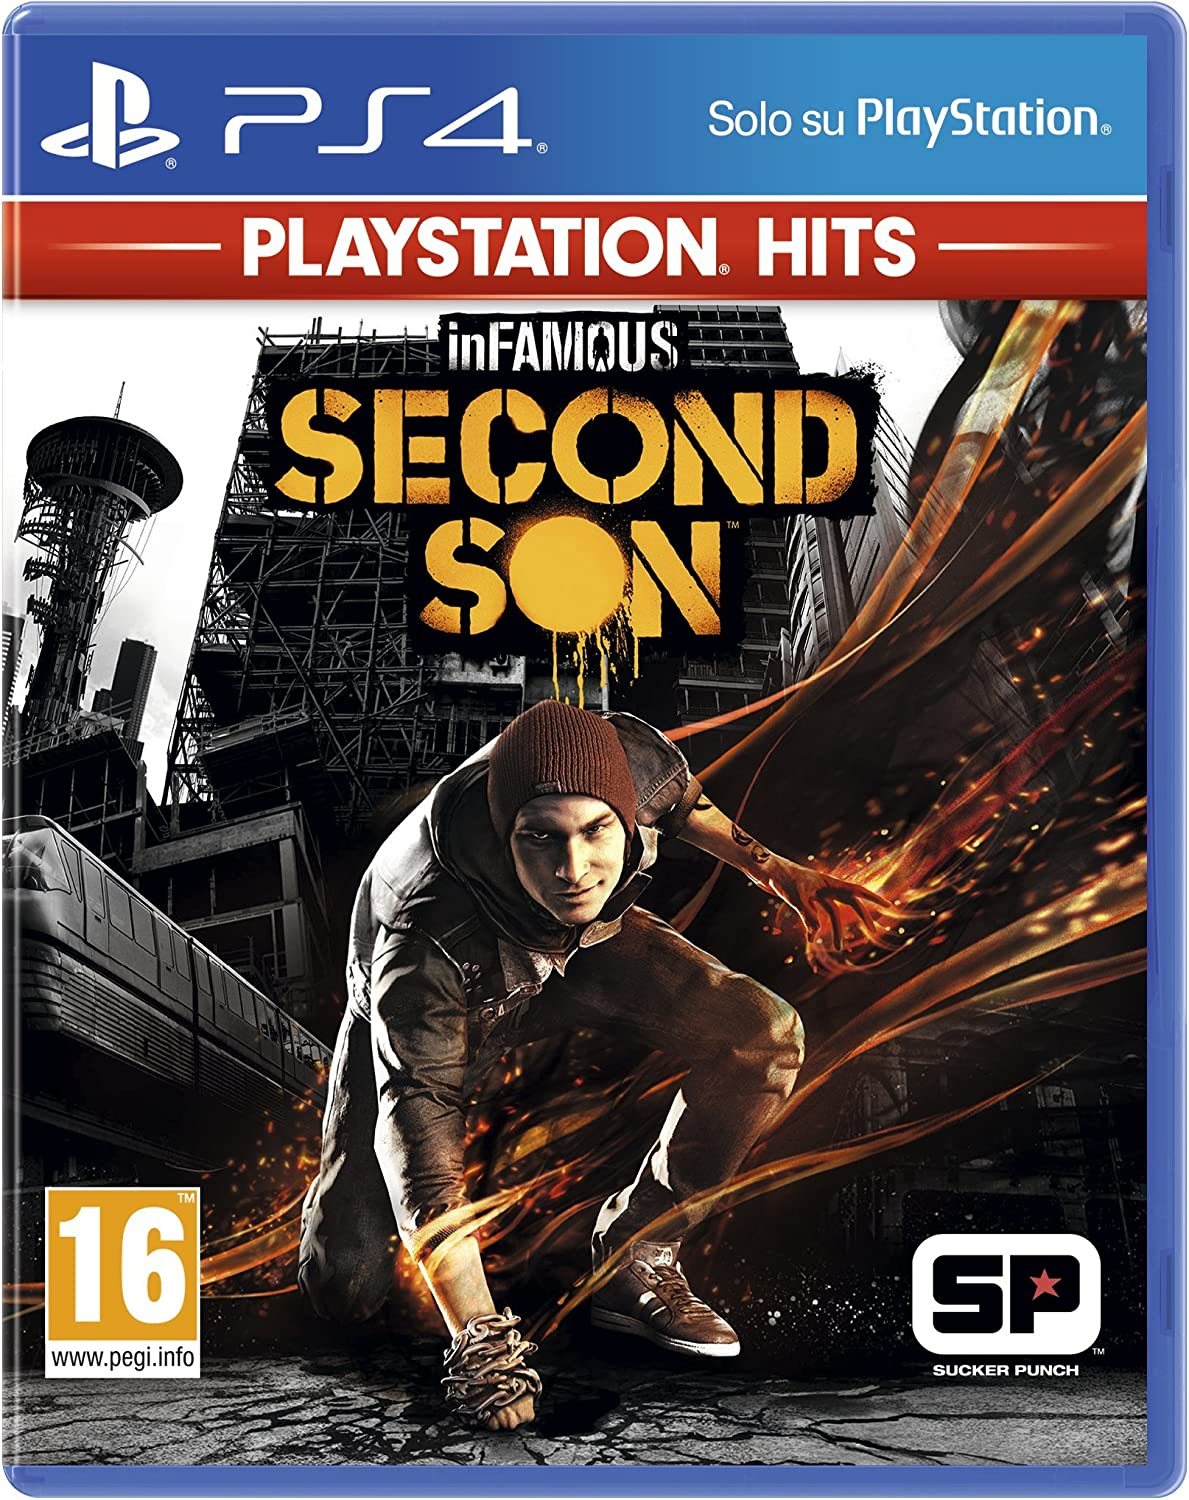 Infamous: Second Son (Ps Hits) - Classics - PlayStation 4 ...